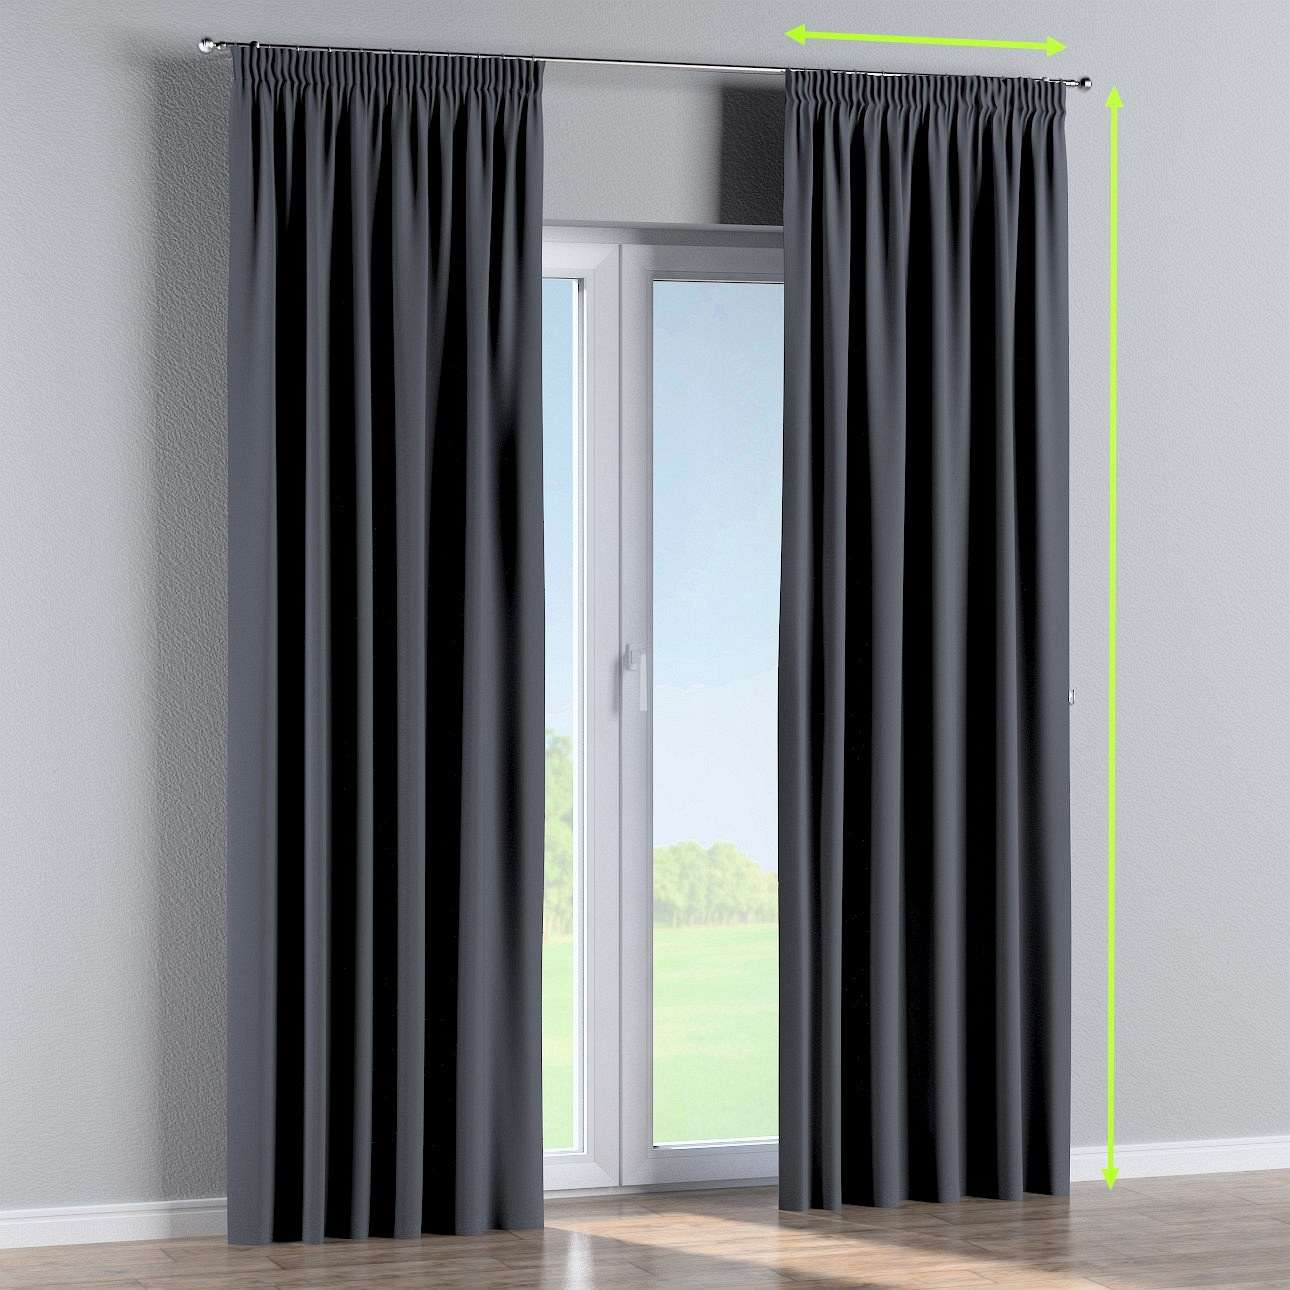 Pencil pleat curtains in collection Blackout, fabric: 269-76